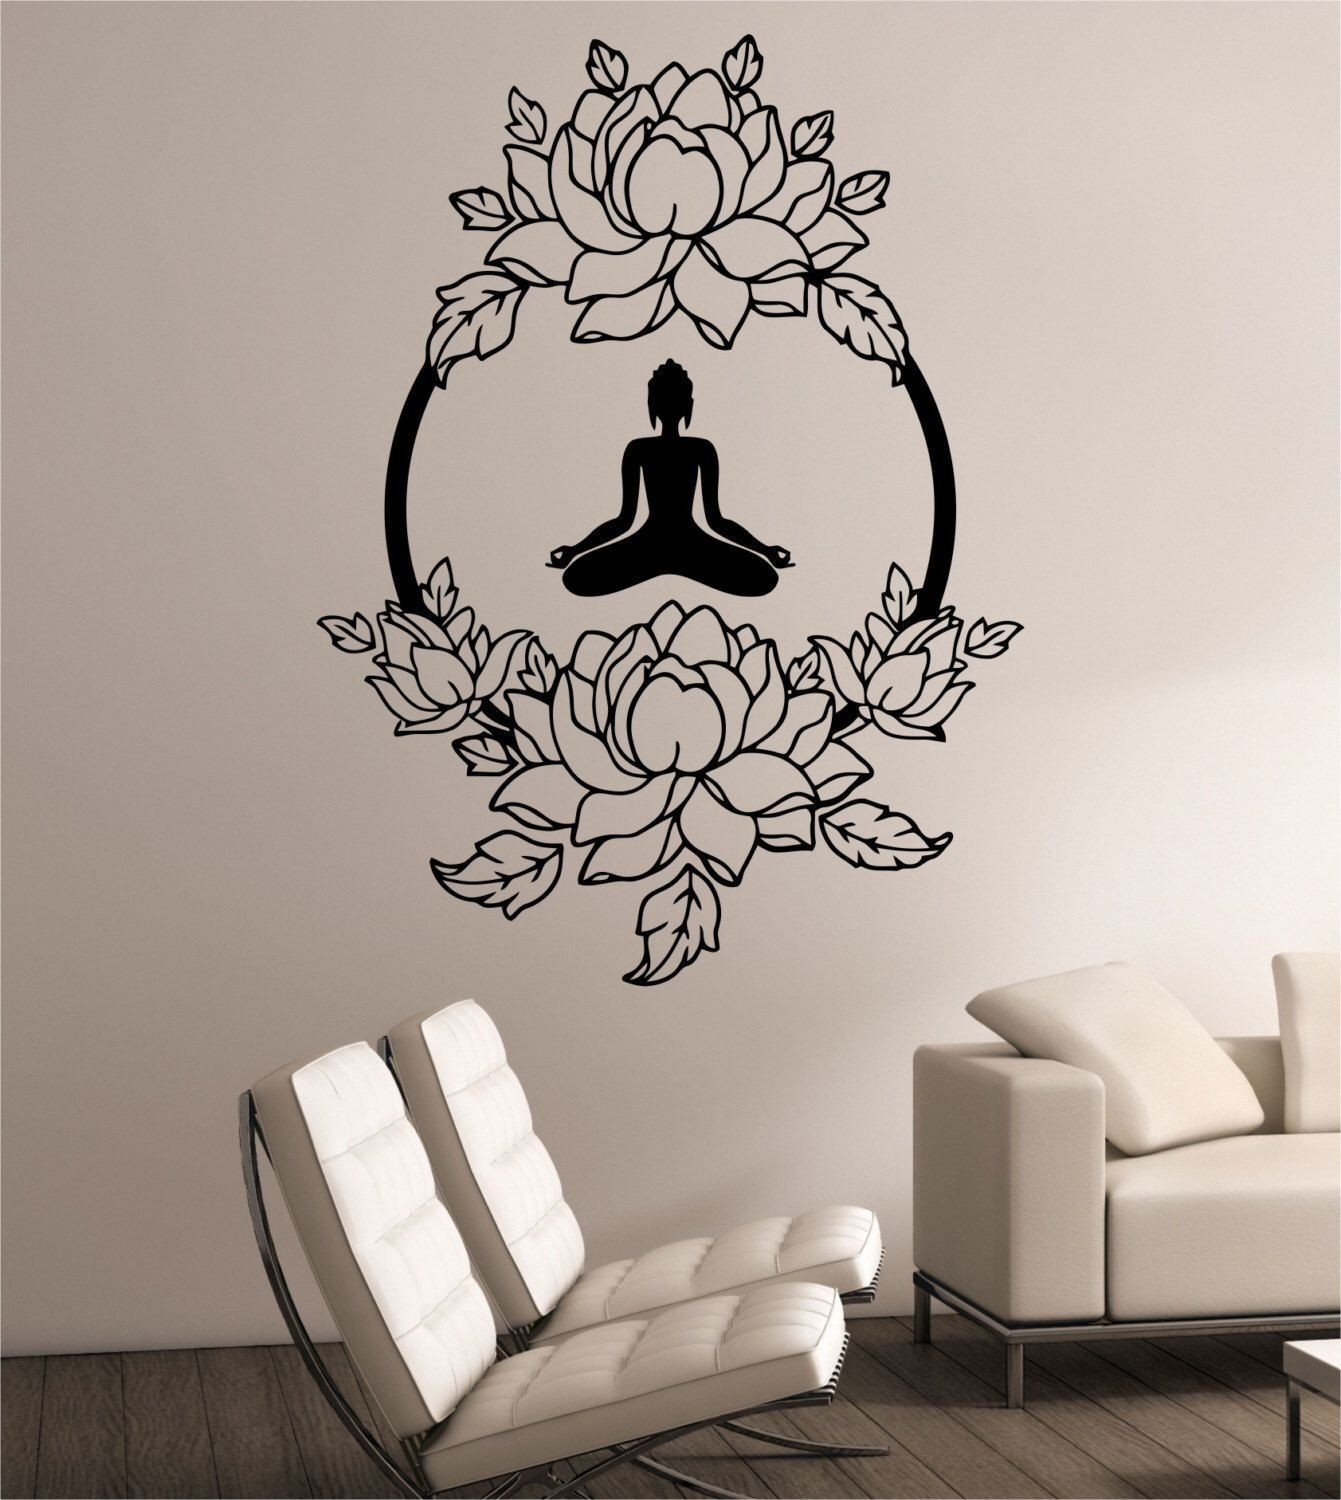 39 New Black Wall Art Stickers Design Of Arabic Wall Art | Wall Art Regarding Latest Arabic Wall Art (View 2 of 20)